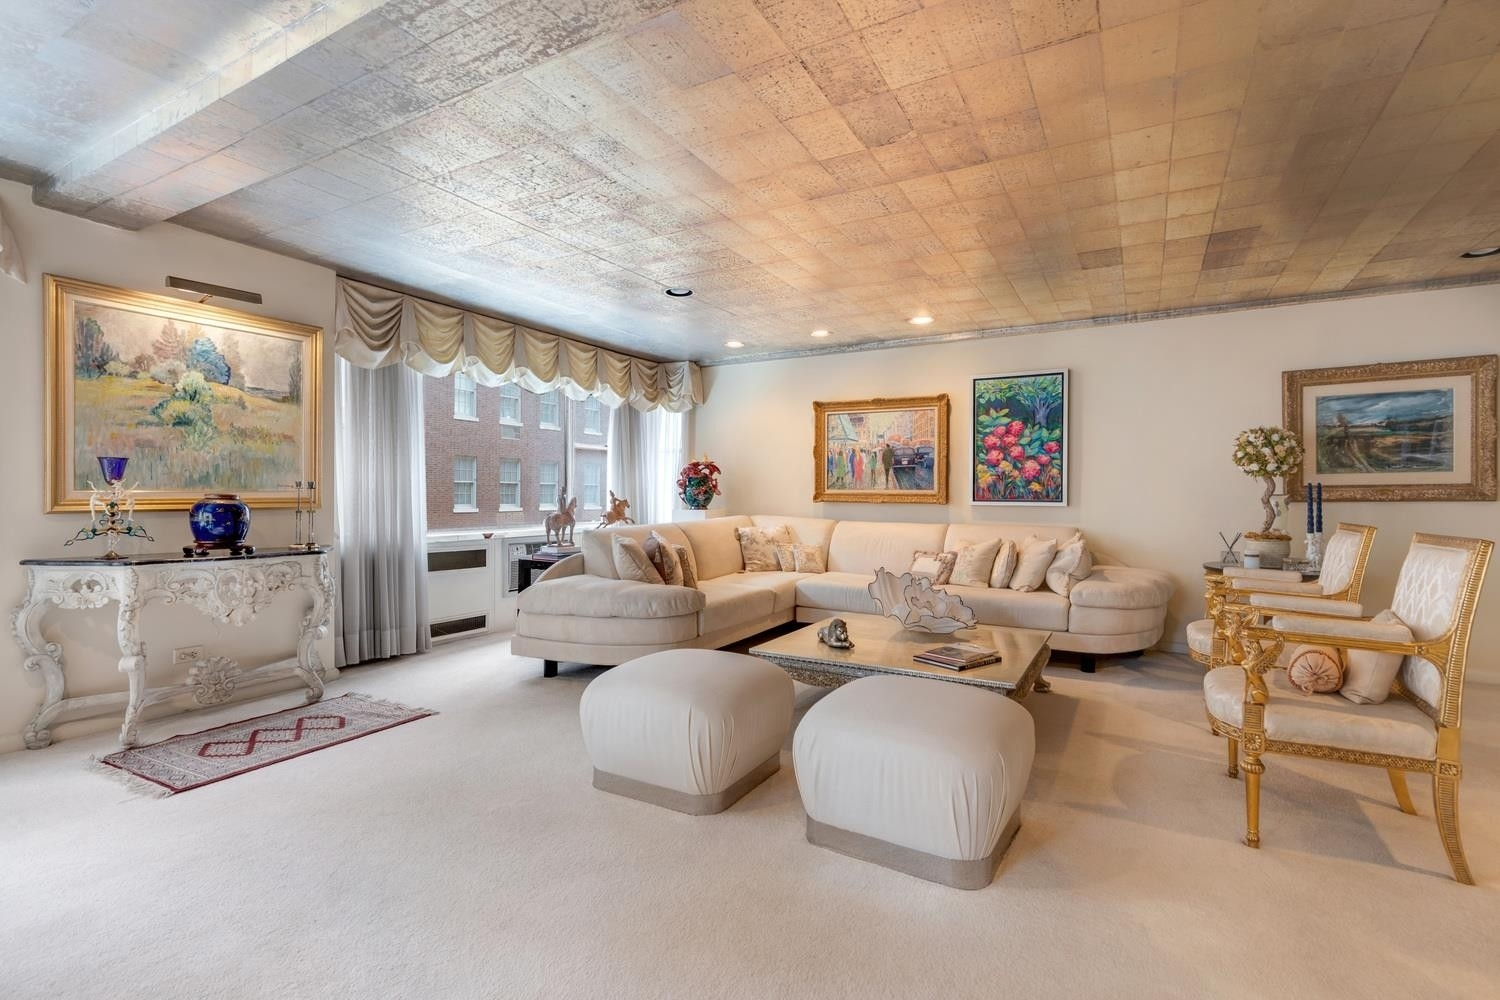 3. Co-op Properties for Sale at Cannon Point North, 25 SUTTON PL S, 11B Sutton Place, New York, NY 10022